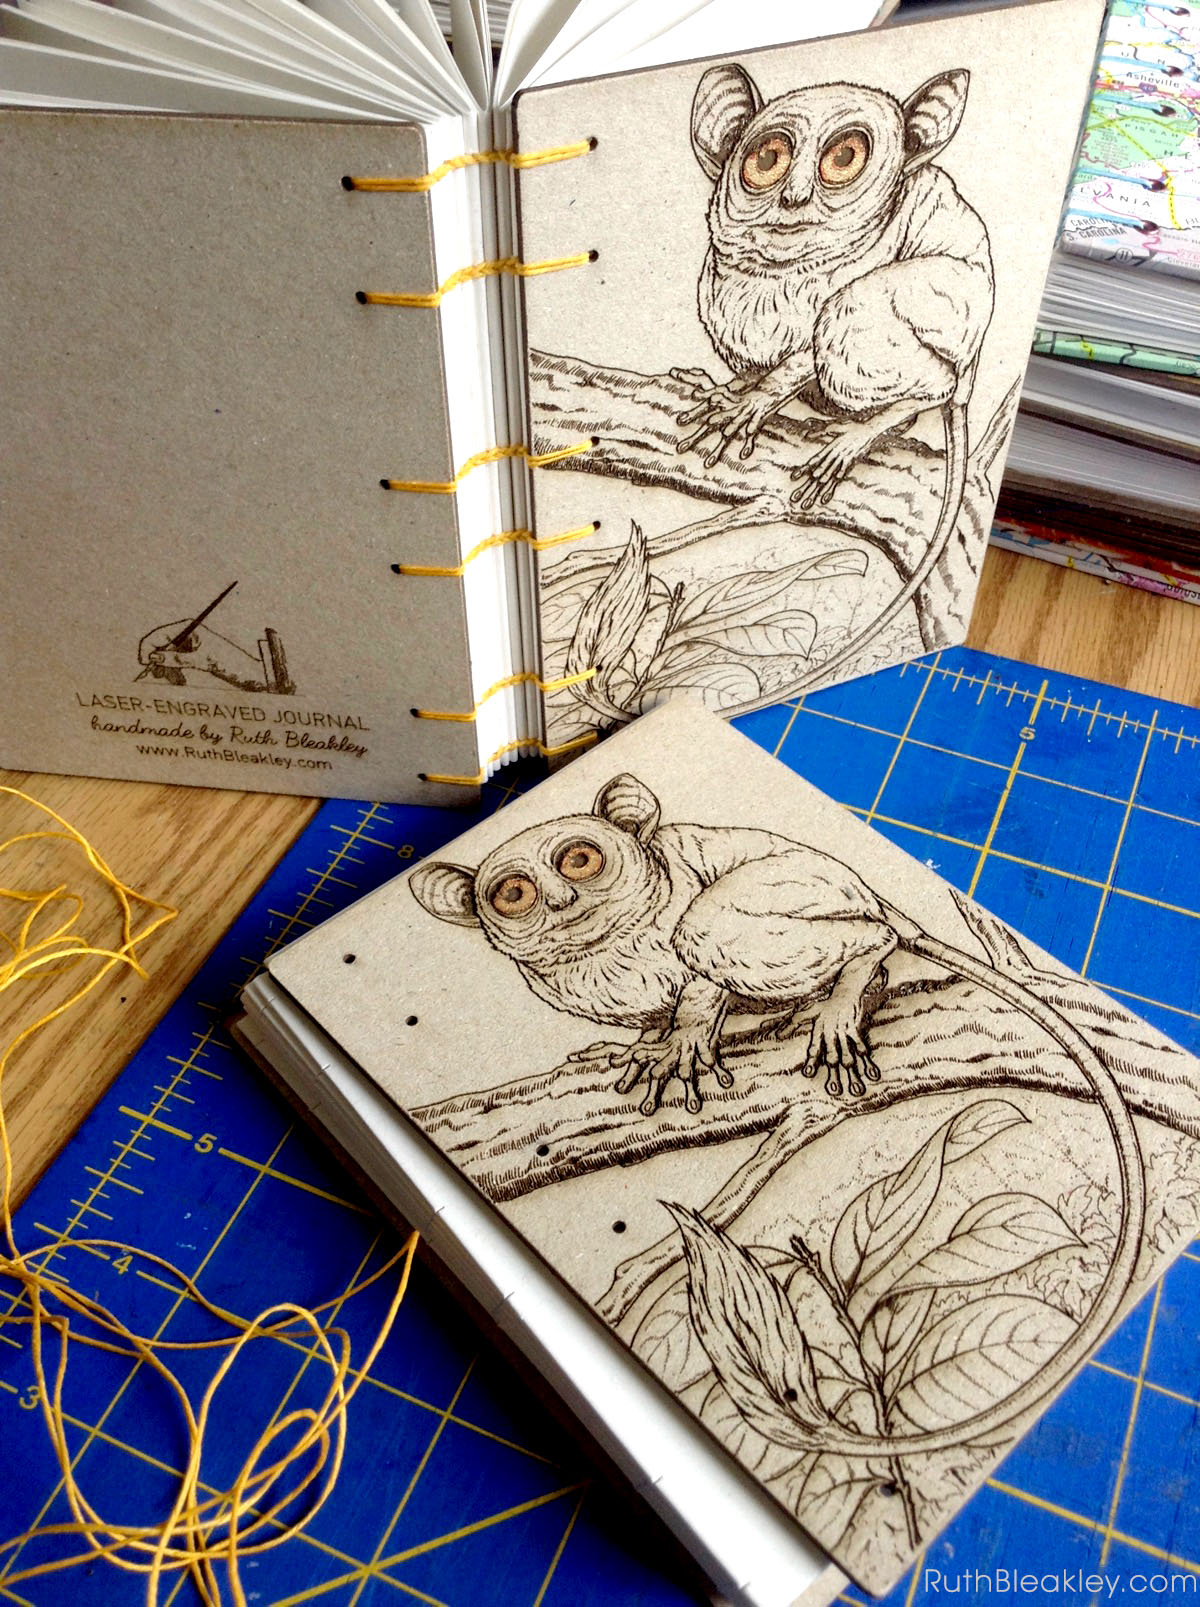 Koboldmaki Tarsier laser engraved journal handmade by book artist Ruth Bleakley - handmade with Glowforge